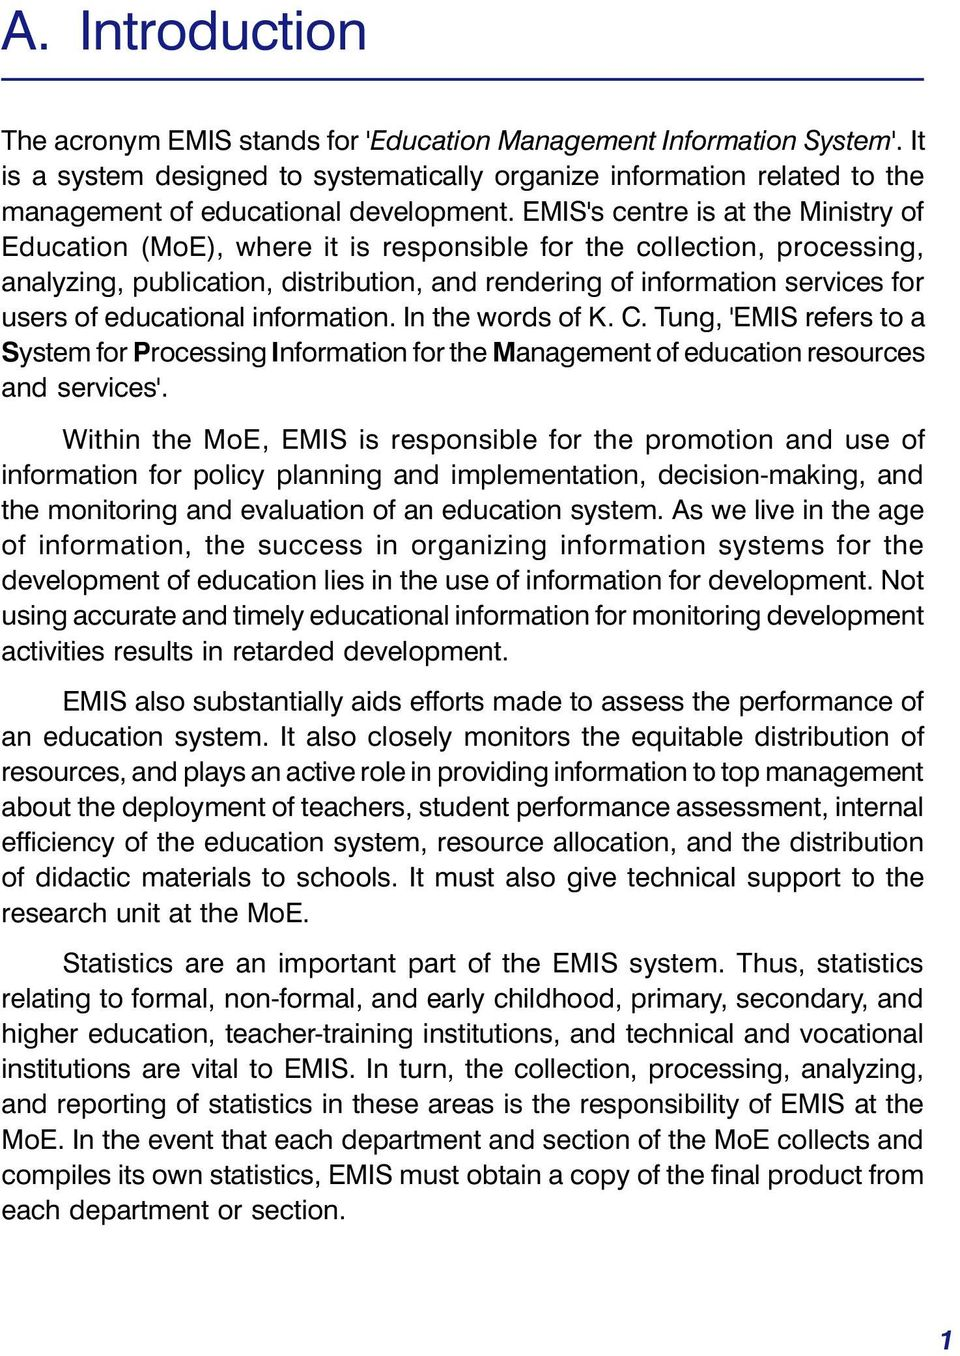 EMIS's centre is at the Ministry of Education (MoE), where it is responsible for the collection, processing, analyzing, publication, distribution, and rendering of information serices for users of